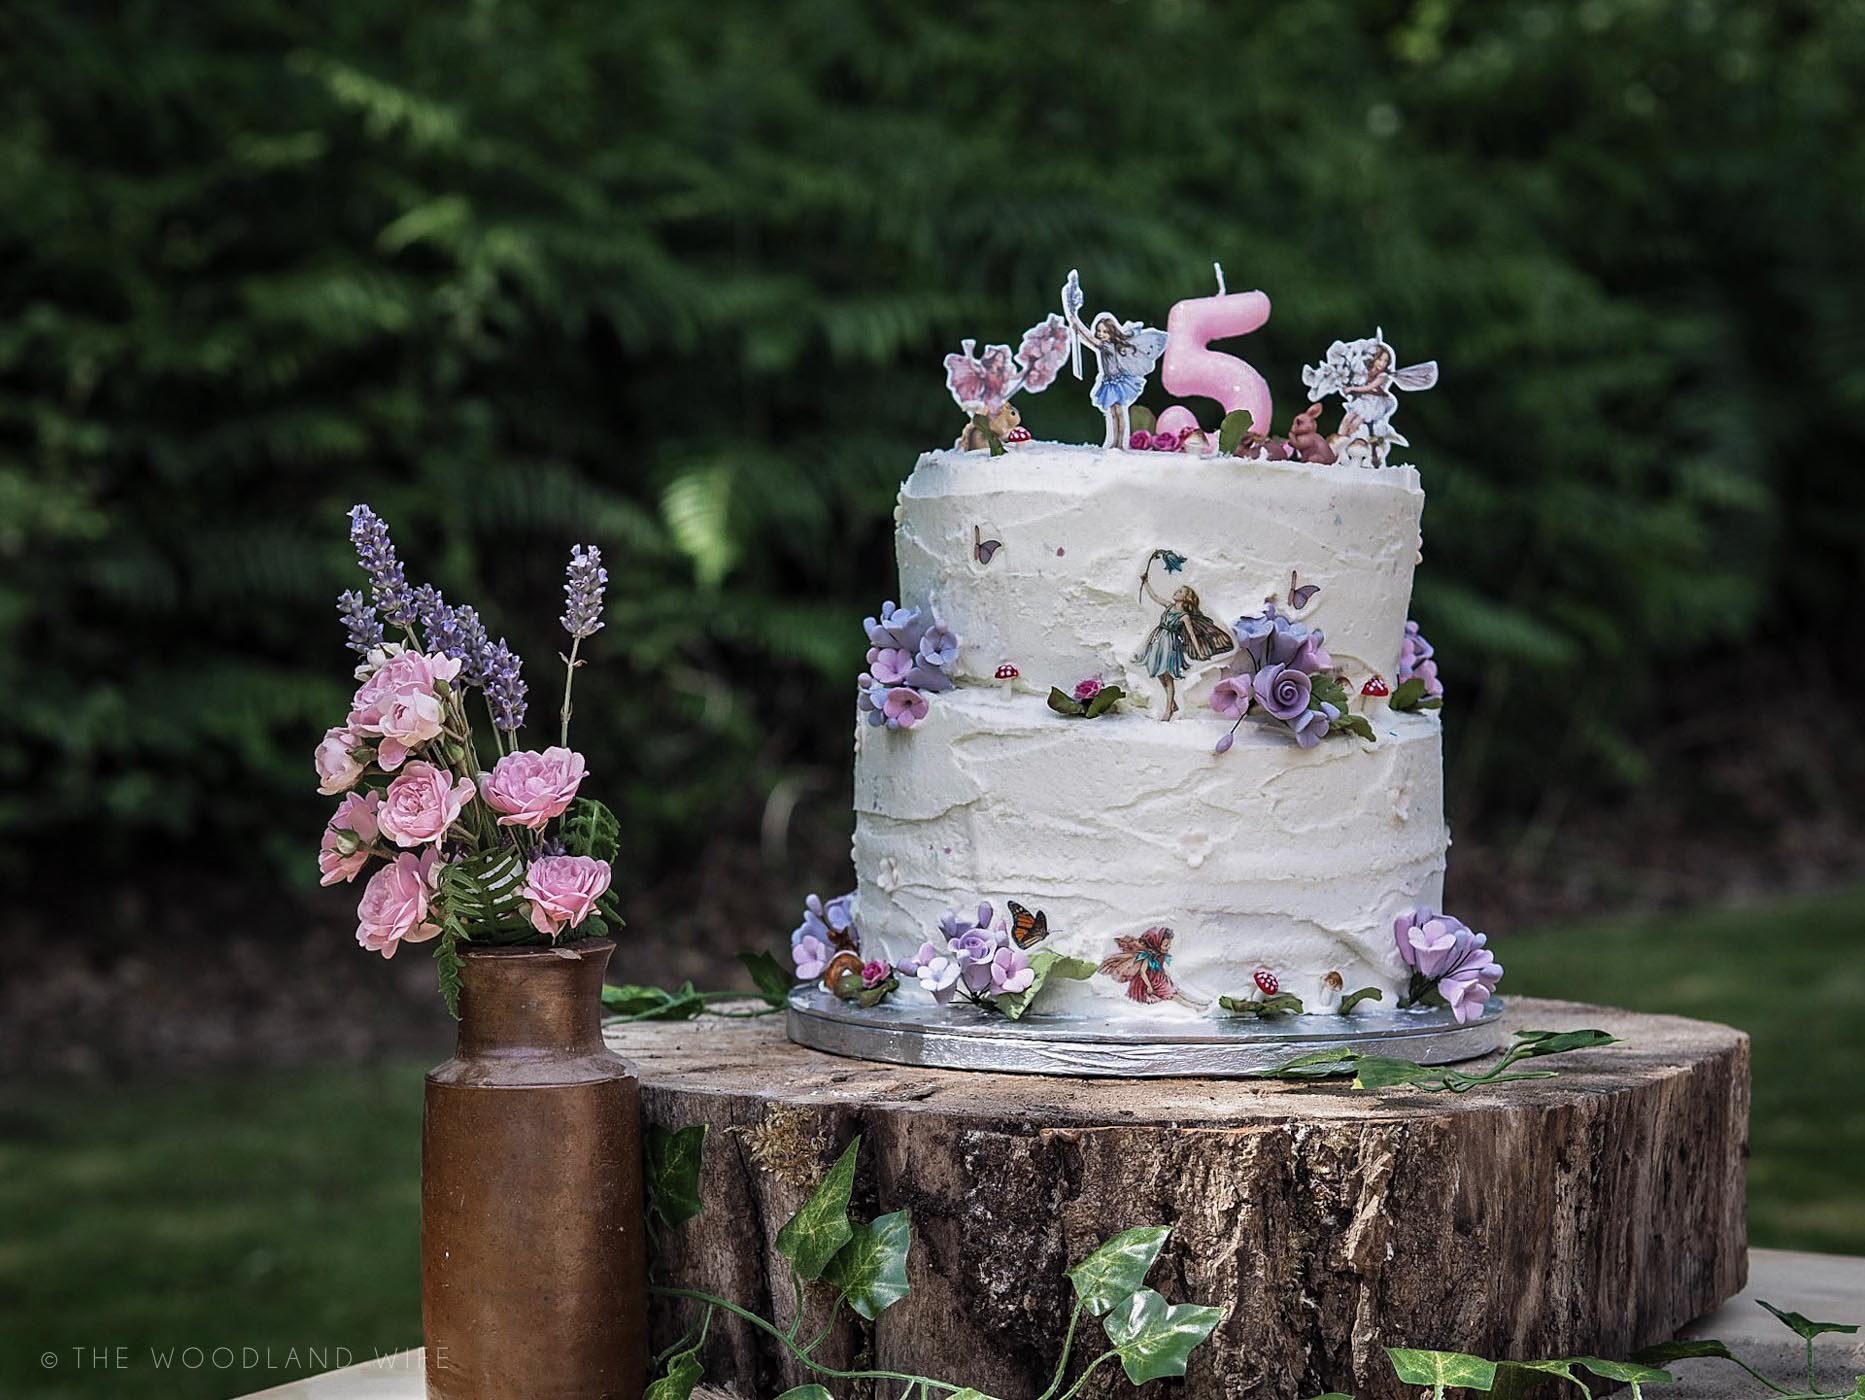 The Woodland Wife - Flower Fairy Party - Woodland Party - Flower Fairy Birthday Cake - Fairies